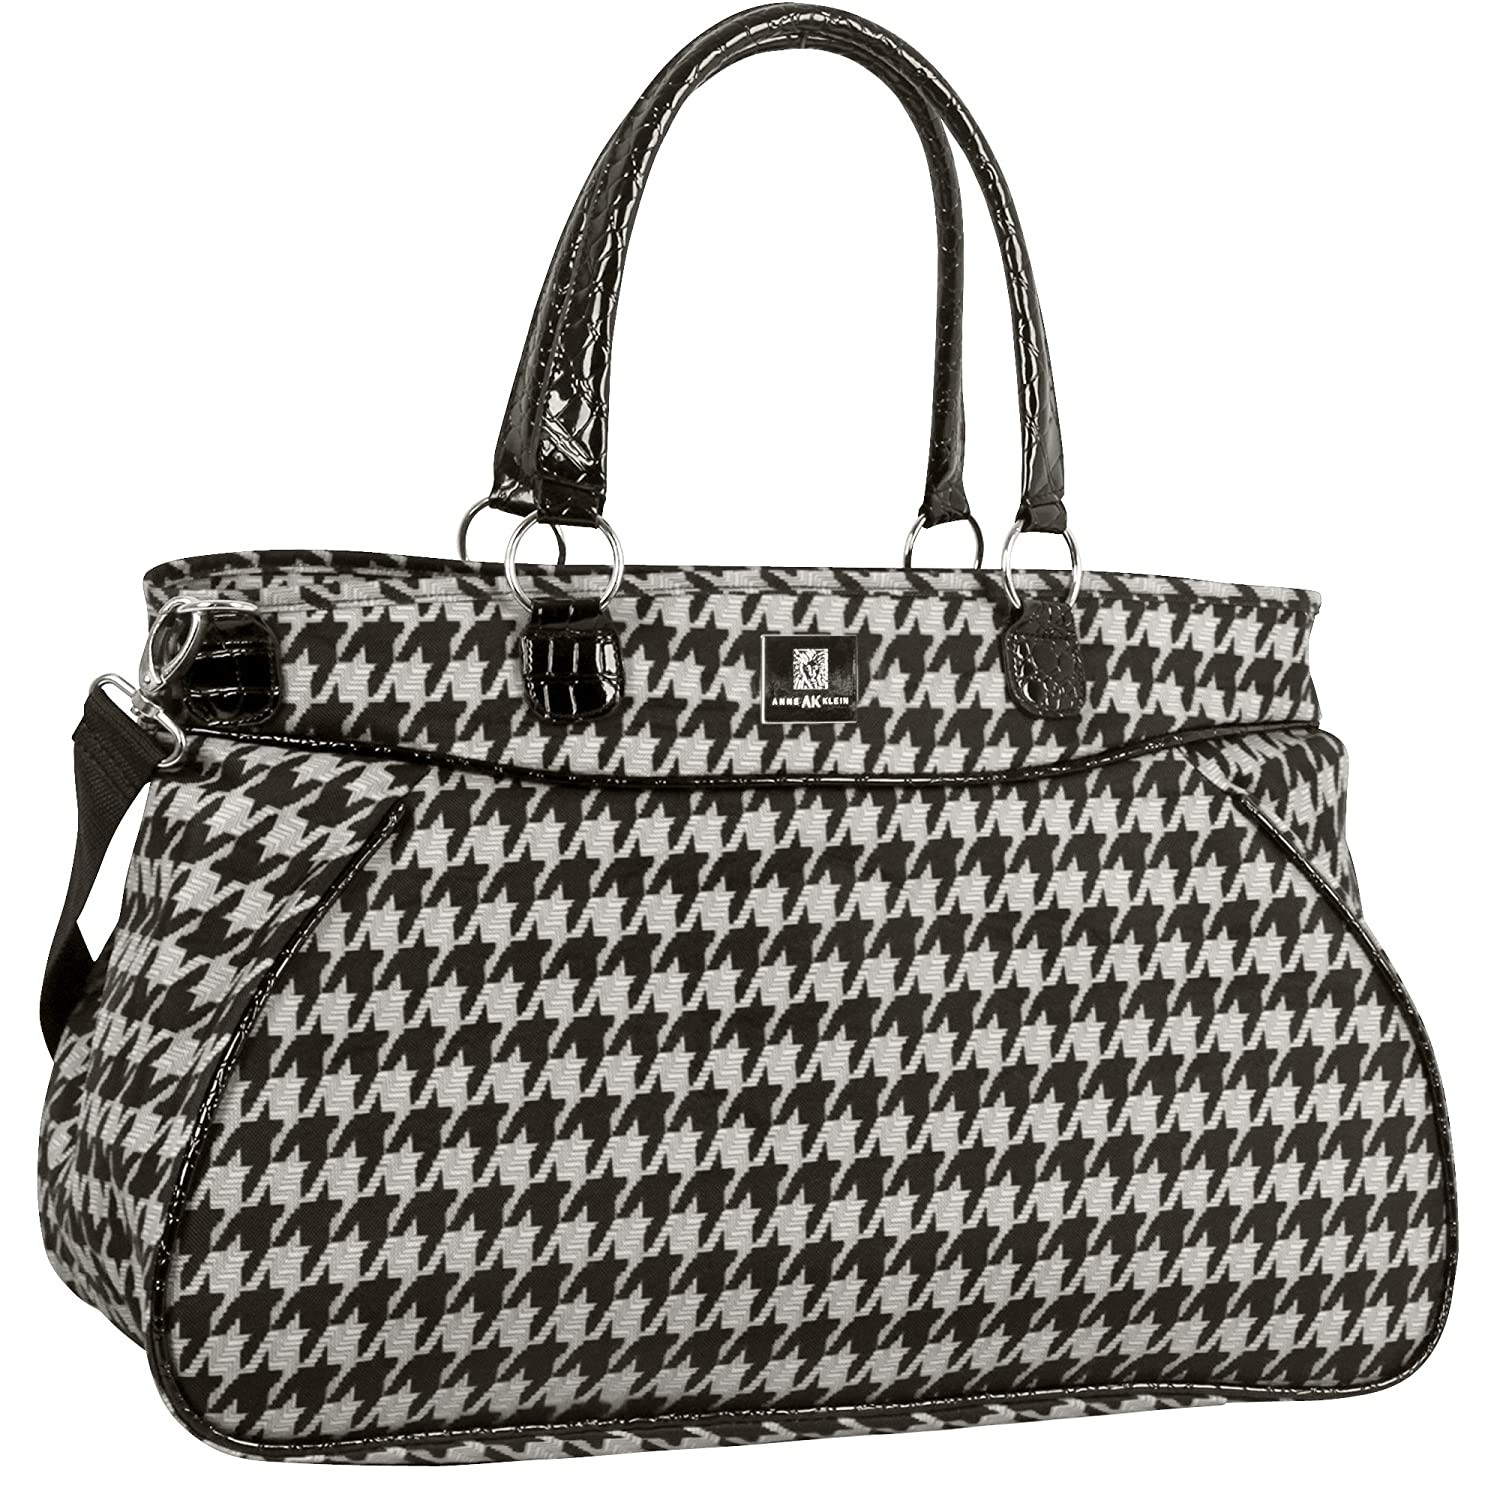 Anne Klein Boston 13 Inch Tote Bag, Black/Grey Houndstooth, One Size RAO4D 2768C05